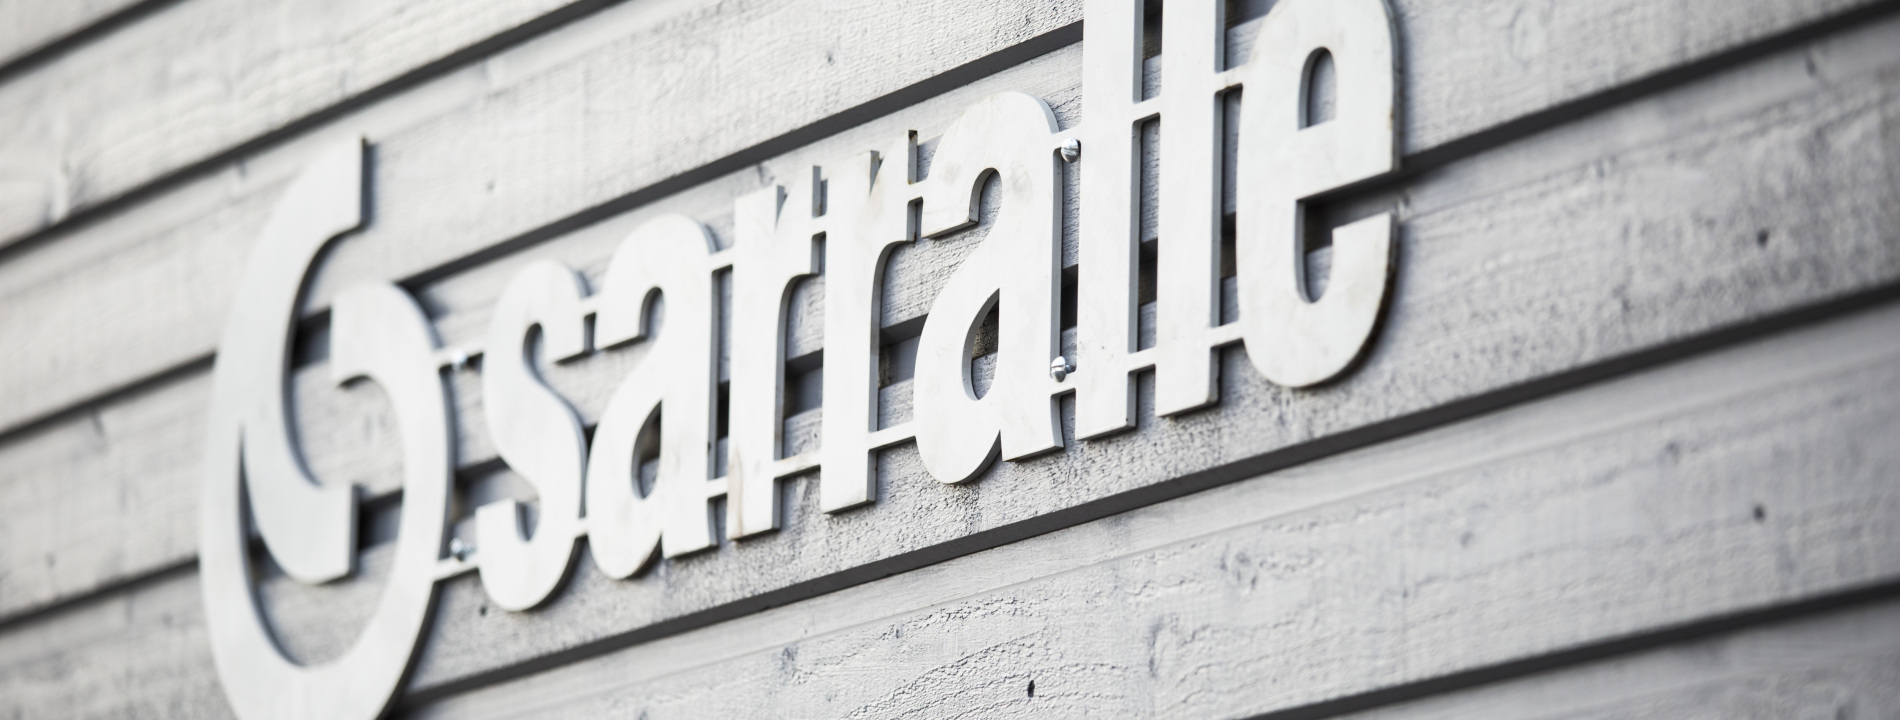 SARRALLE GROUP: We know how